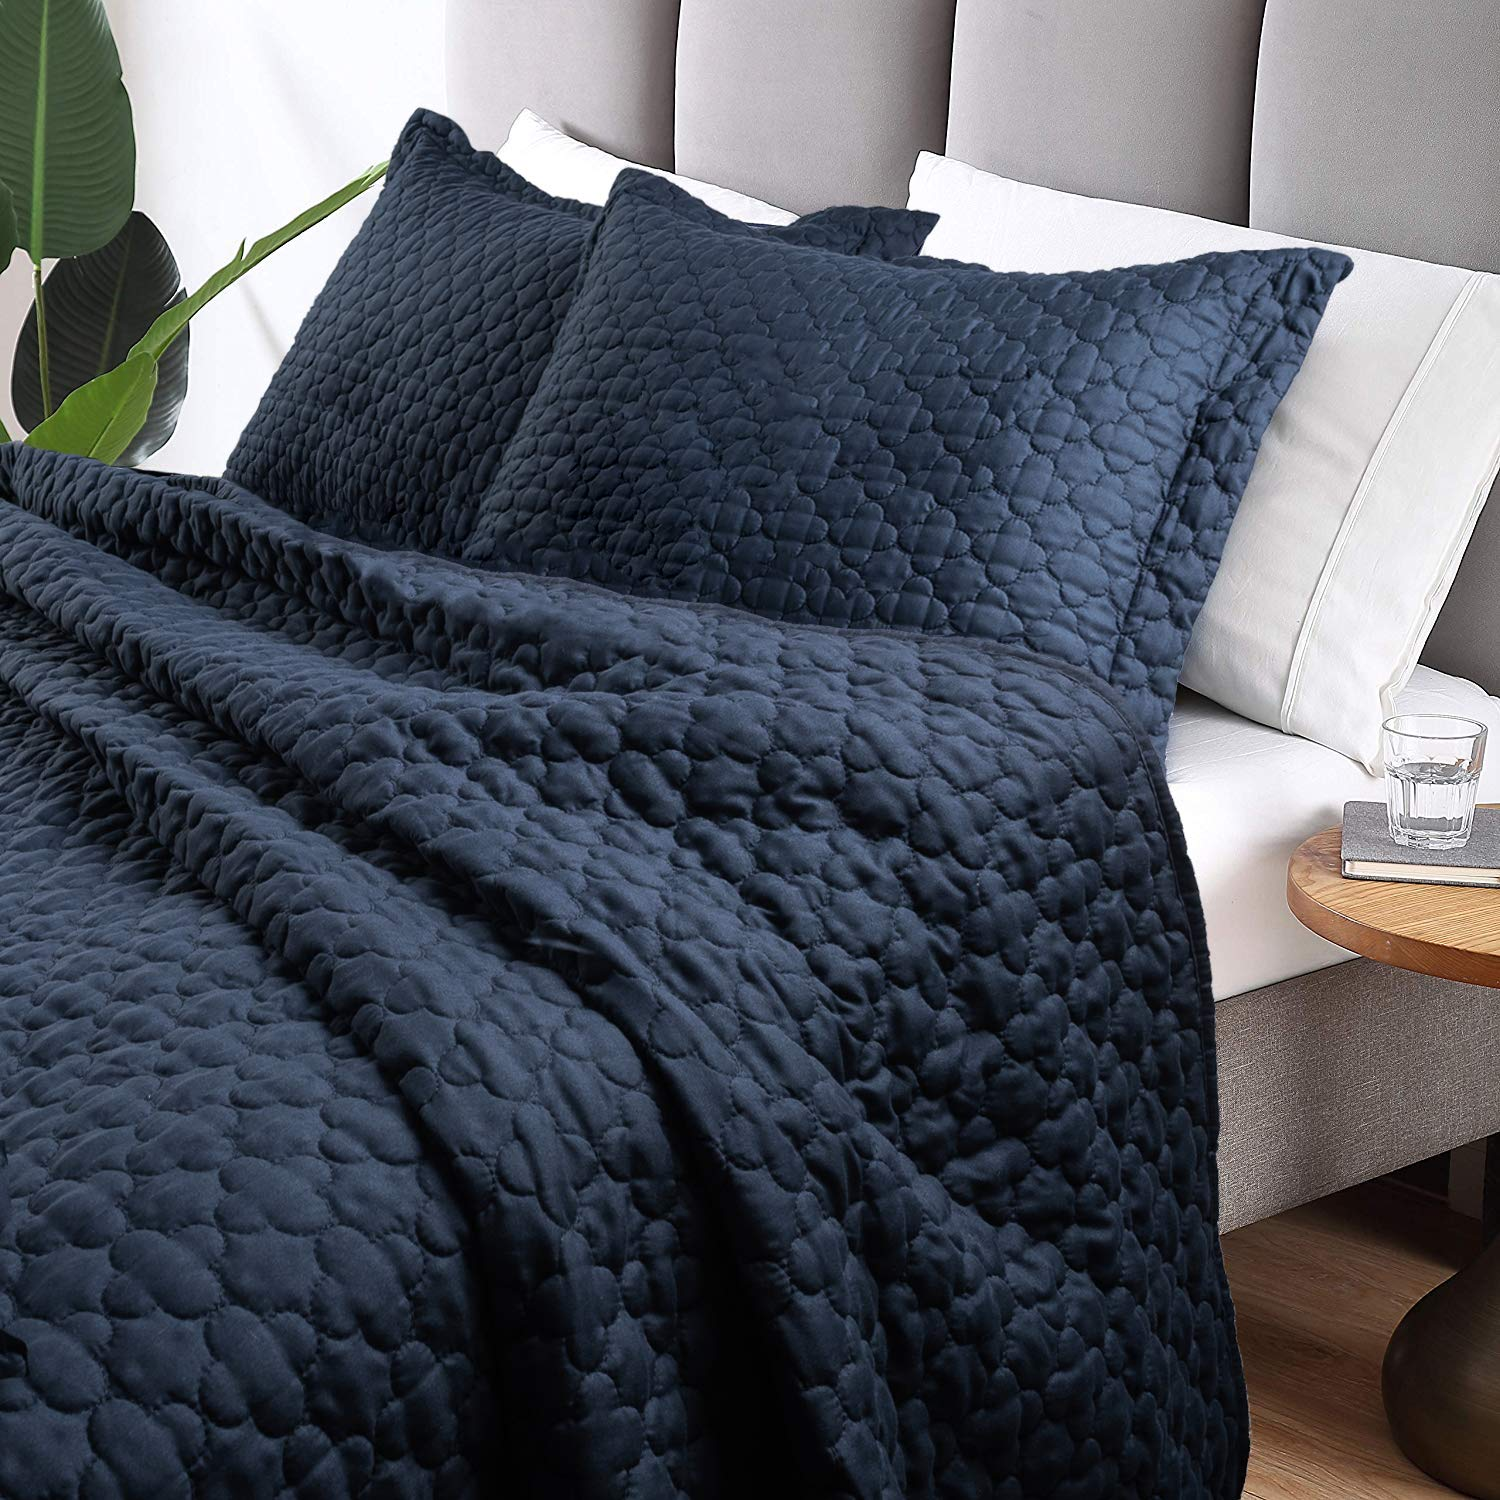 Tempcore Quilt Queen Size Navy Blue 3 Piece, Hypoallergenic Microfiber Lightweight Soft Bedspread Coverlet for All Season,Full/Queen Navy Blue,(1 Quilt,2 Shams) by Tempcore